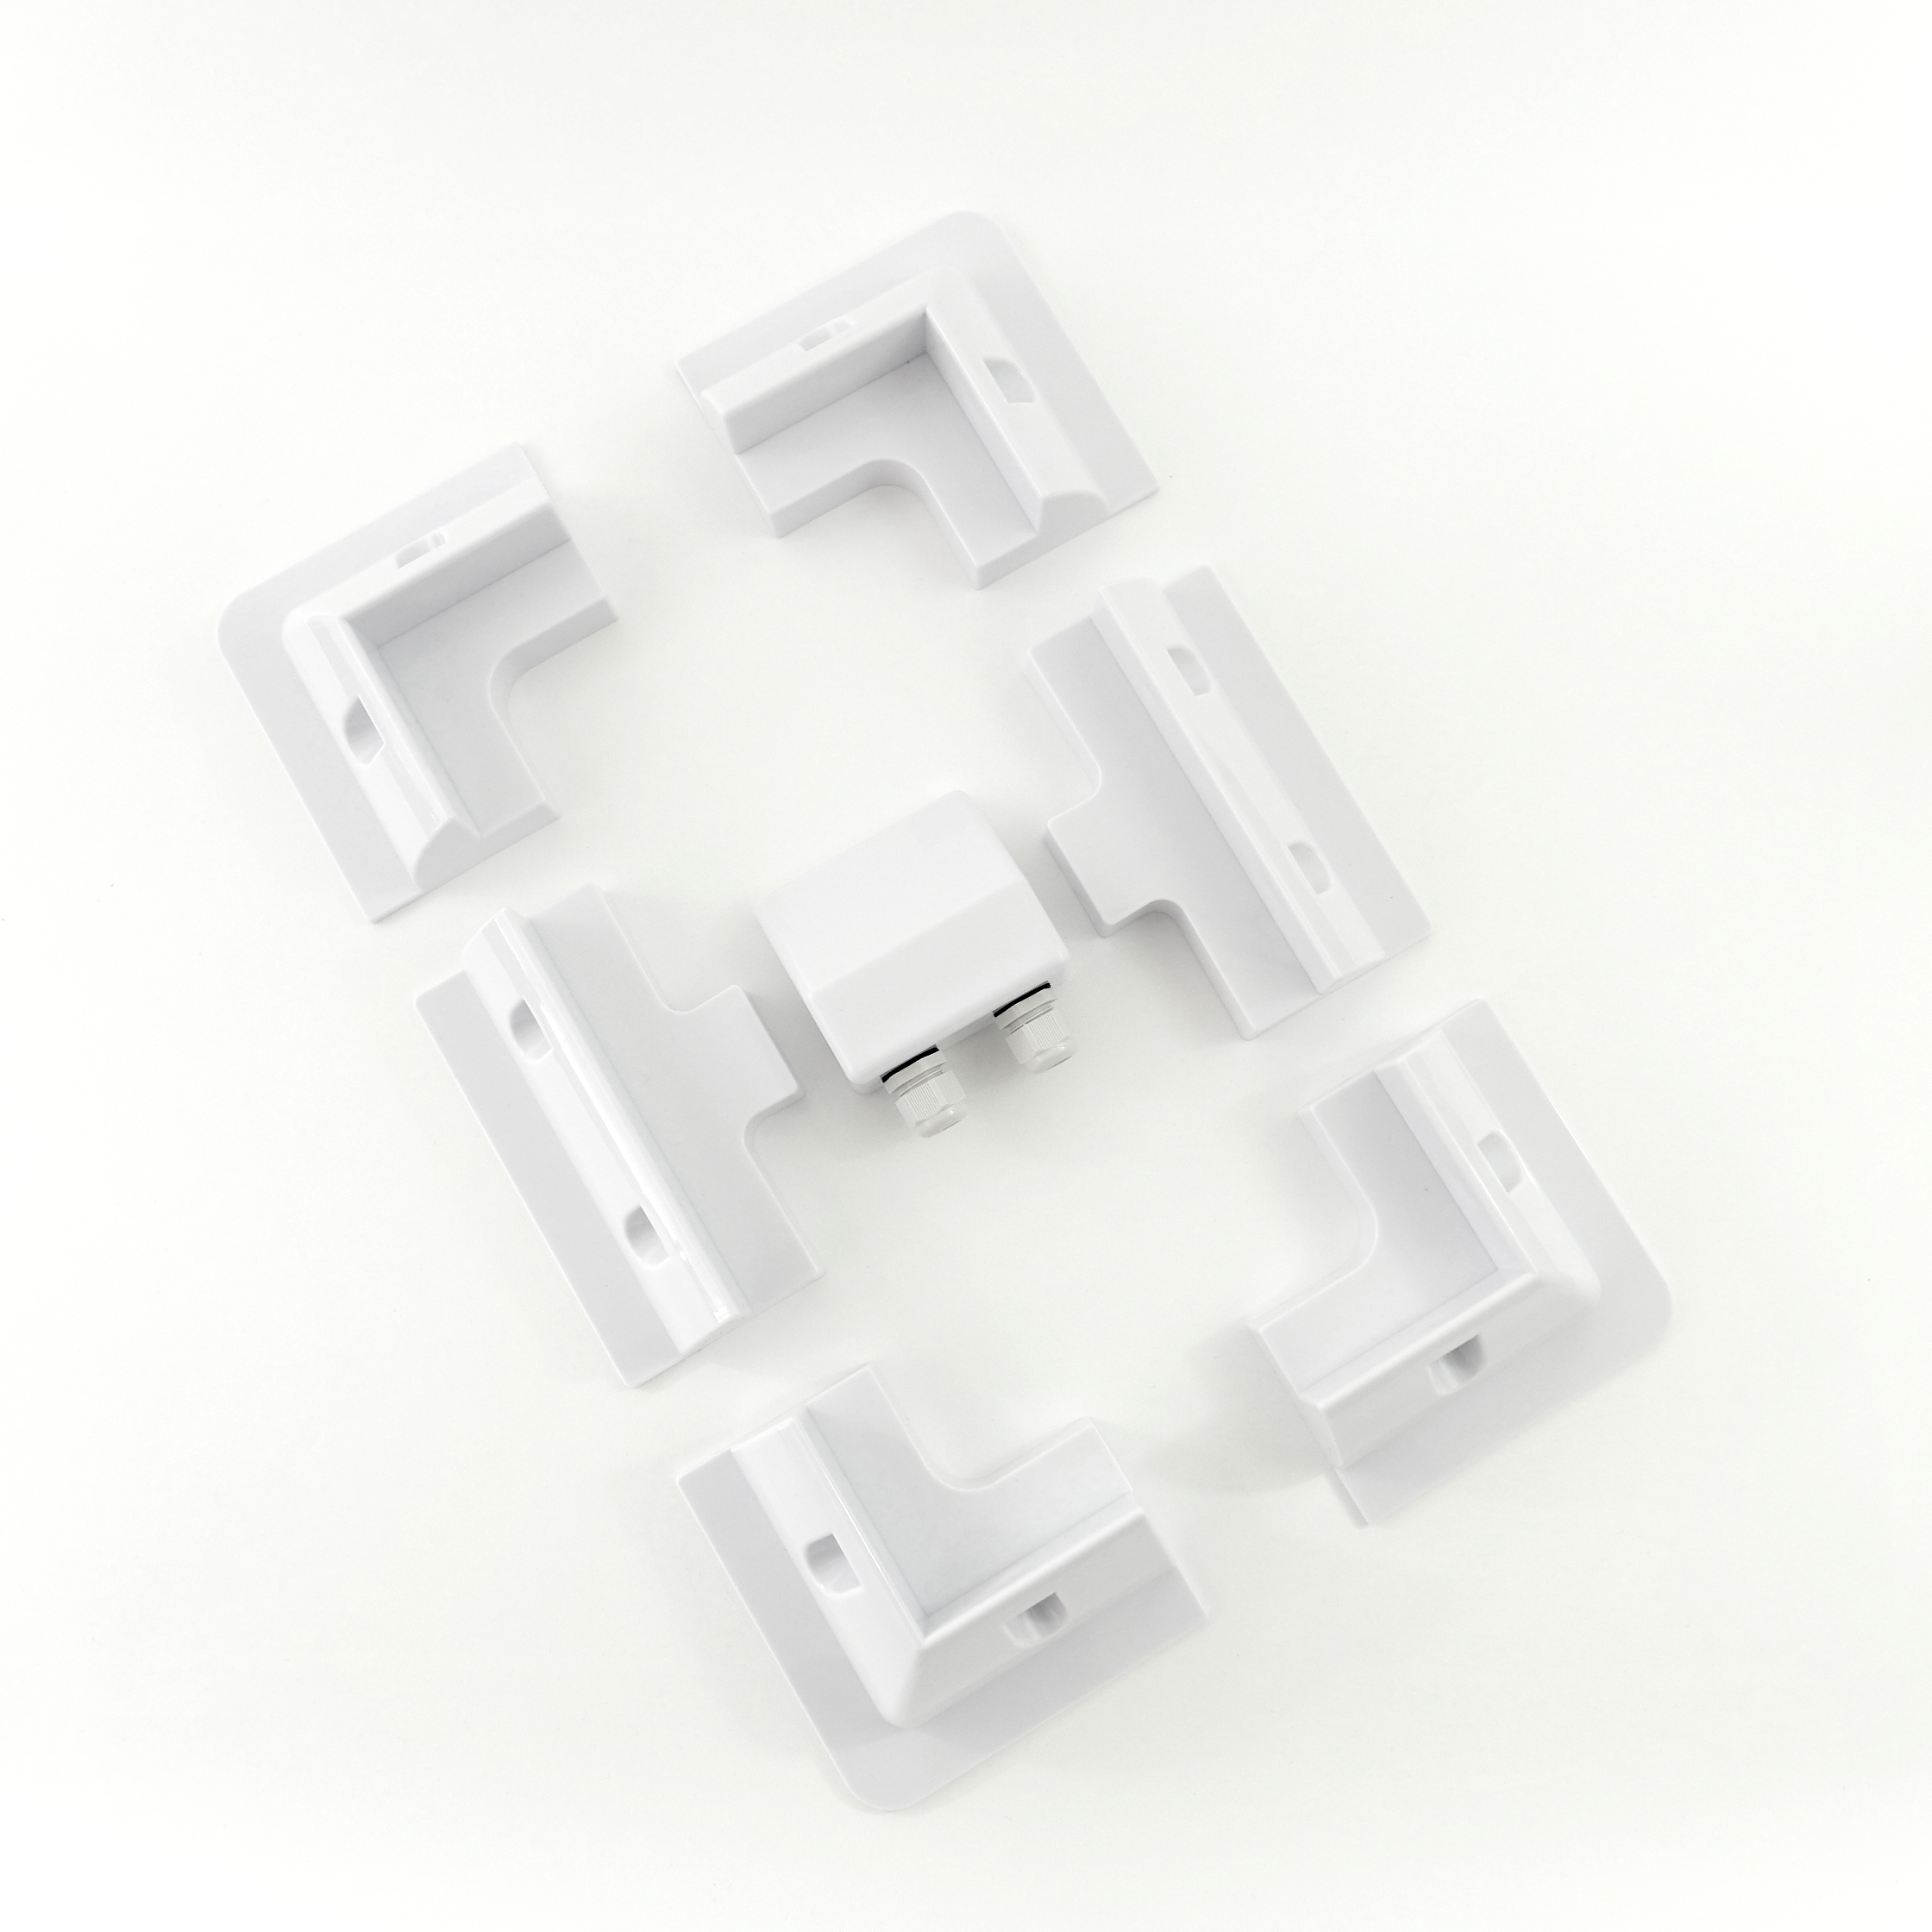 Solar Panel Brackets, Set of 6, with Cable Gland